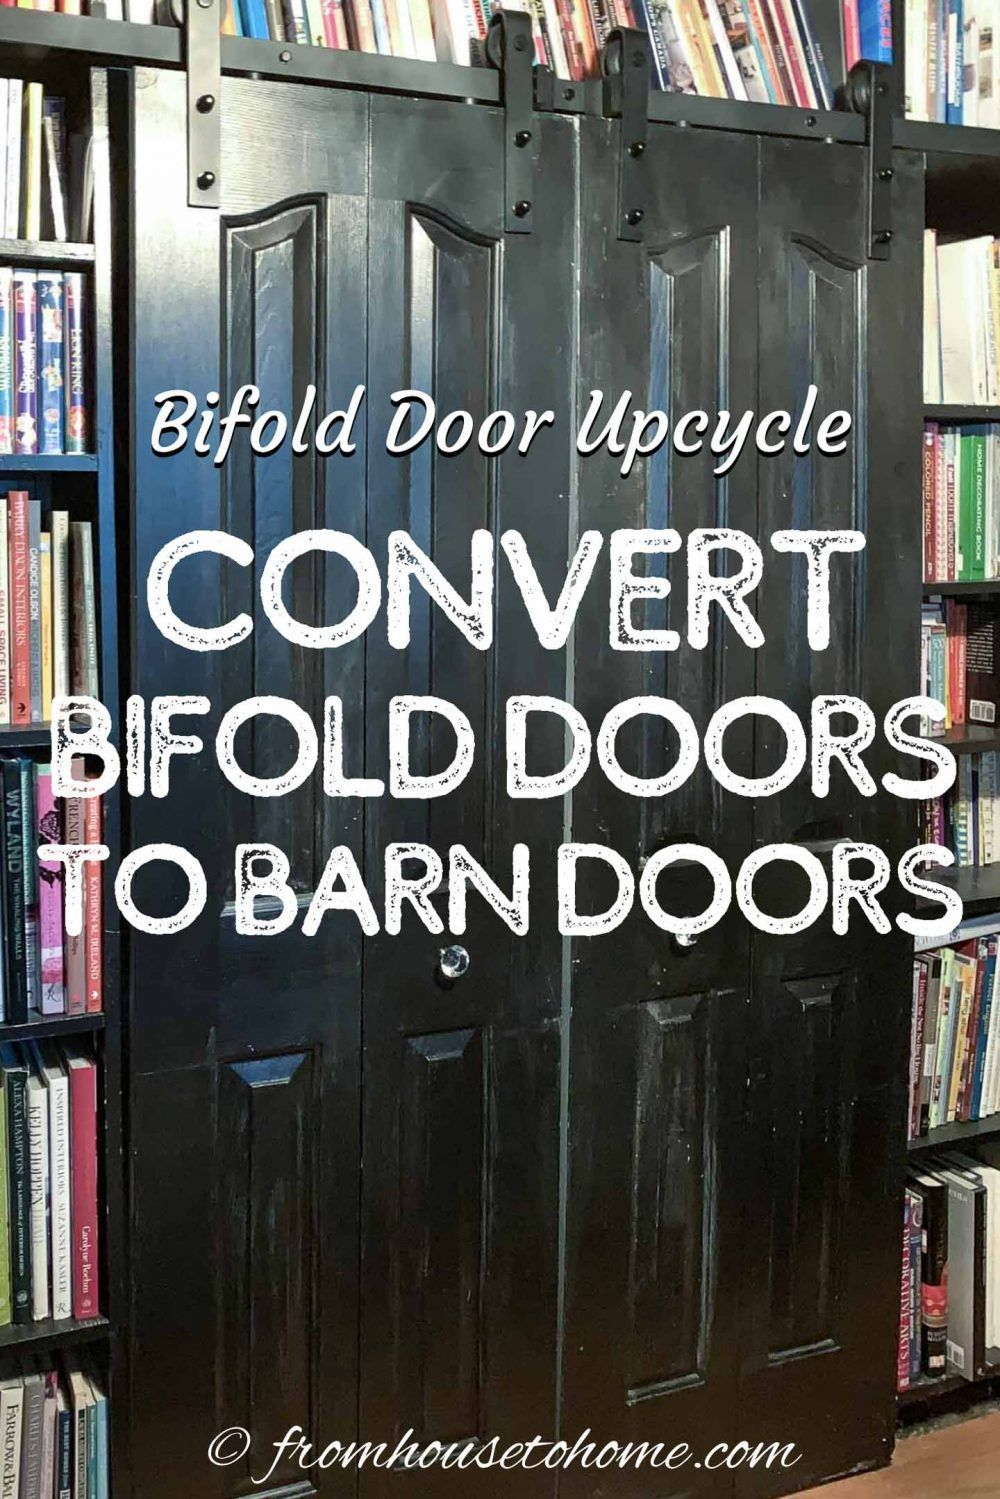 Learn how to convert bifold doors to barn doors with this DIY upcycling project that is an easy way to makeover your inexpensive closet doors #fromhousetohome #homedecor #diyproject #doors #barndoors  #diydecorating